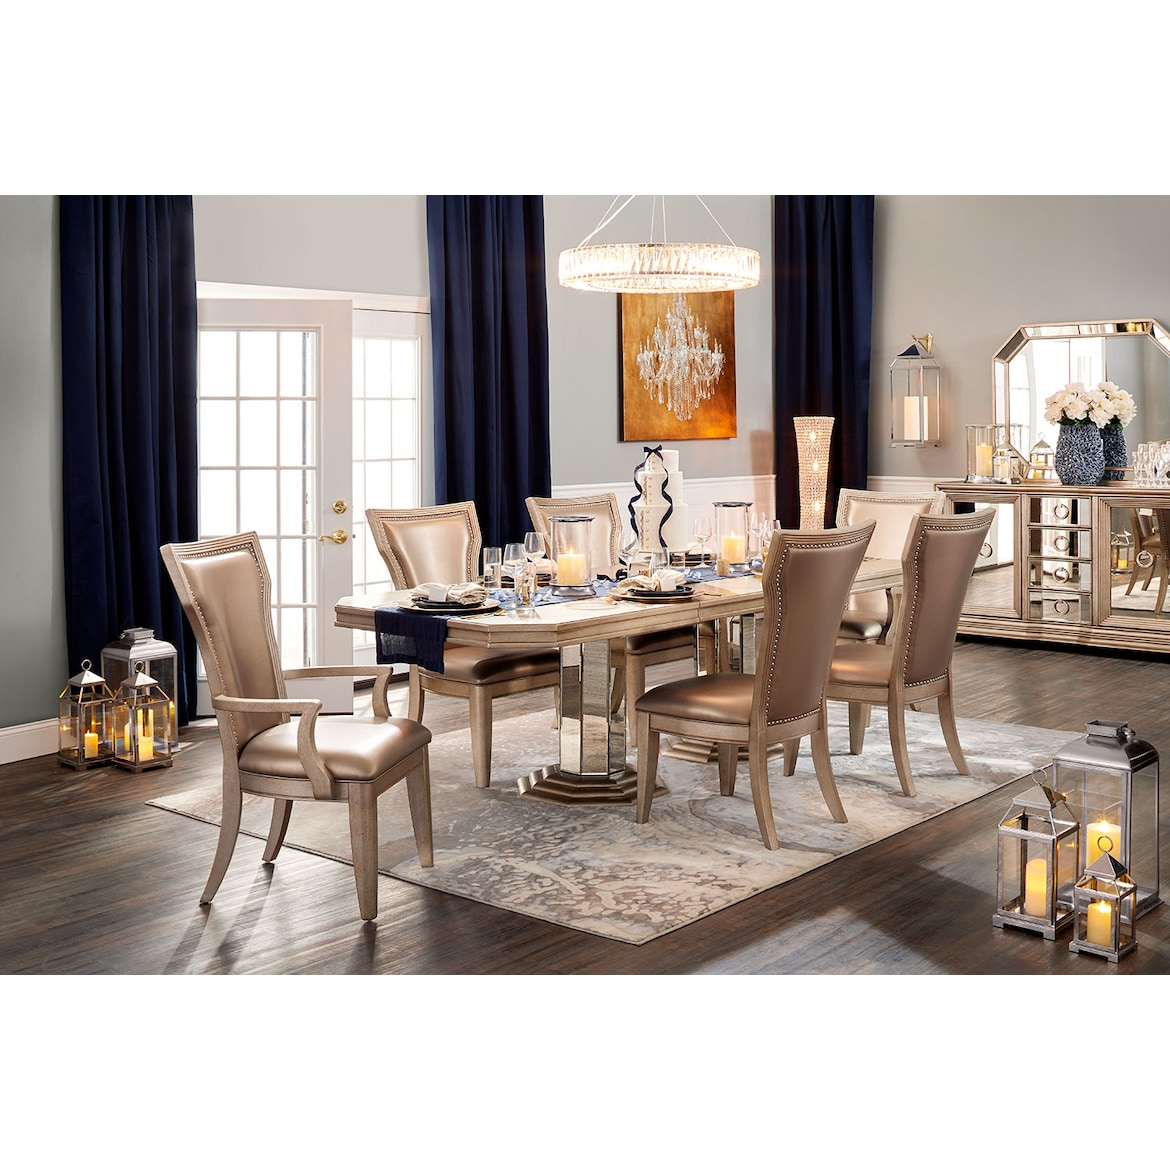 1e7db8c804de Angelina Double-Pedestal Table, Two Arm Chairs and 4 Side Chairs ...